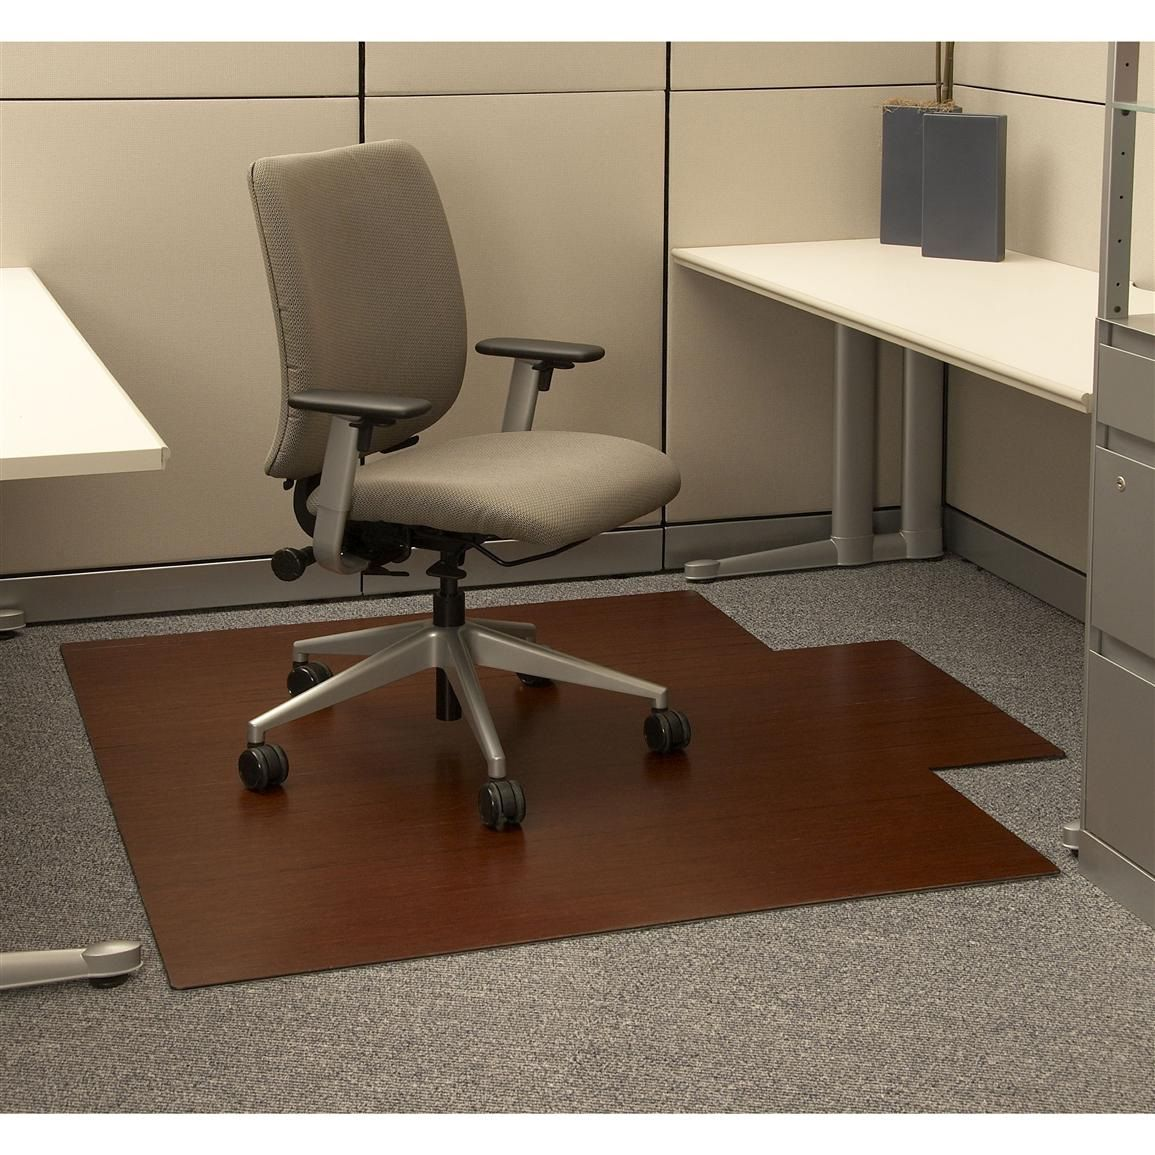 Bamboo office chair mat executive home office furniture